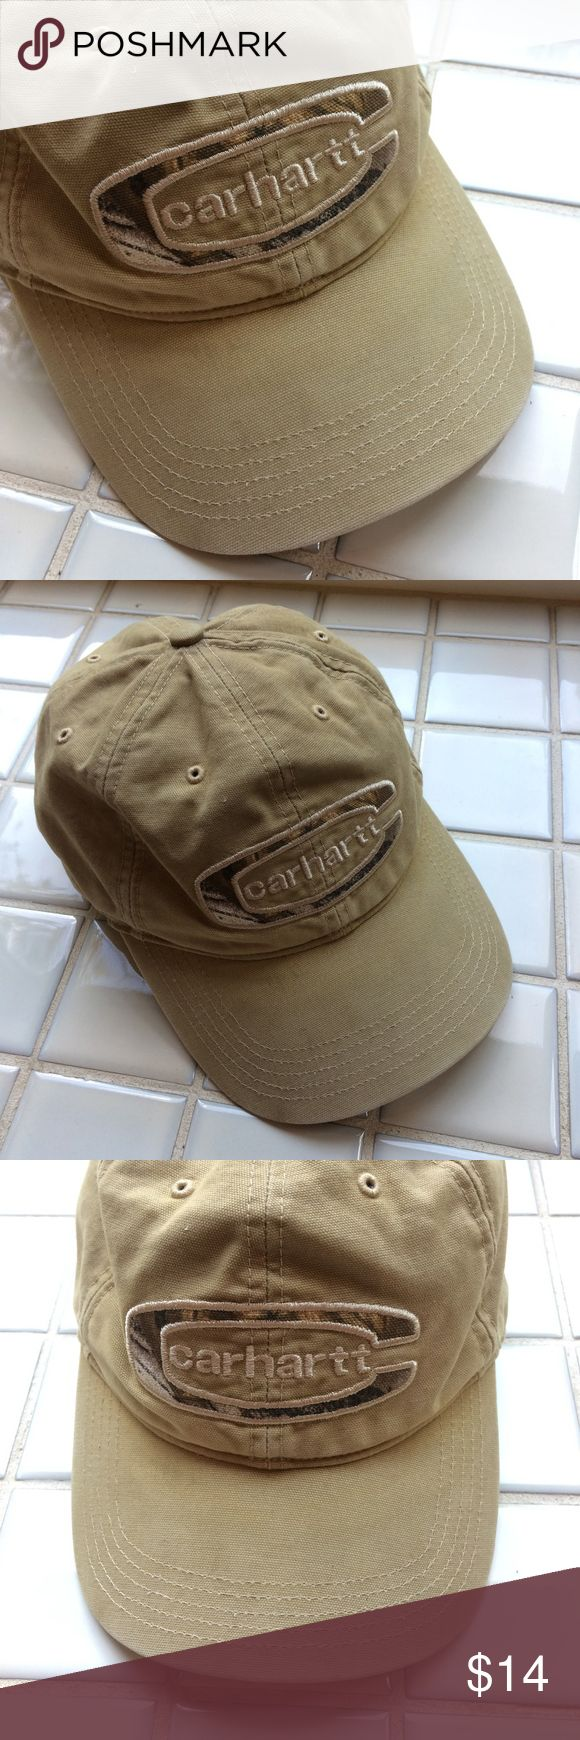 "CARHARTT Cedarville baseball cap — adjustable Size: one-size (adjustable hook-and-loop fastener) Color & pattern: khaki with contrasting forest print fabric inside logo and under brim Style: light-structured, medium-profile baseball cap with pre-curved visor and ""FastDry"" technology Material: 100% cotton washed canvas  Condition Gently pre-owned; no known flaws. Shipped with care from a clean, smoke-free environment.  Note: Color may vary slightly from photos.  PRICE IS FIRM. Carhartt…"